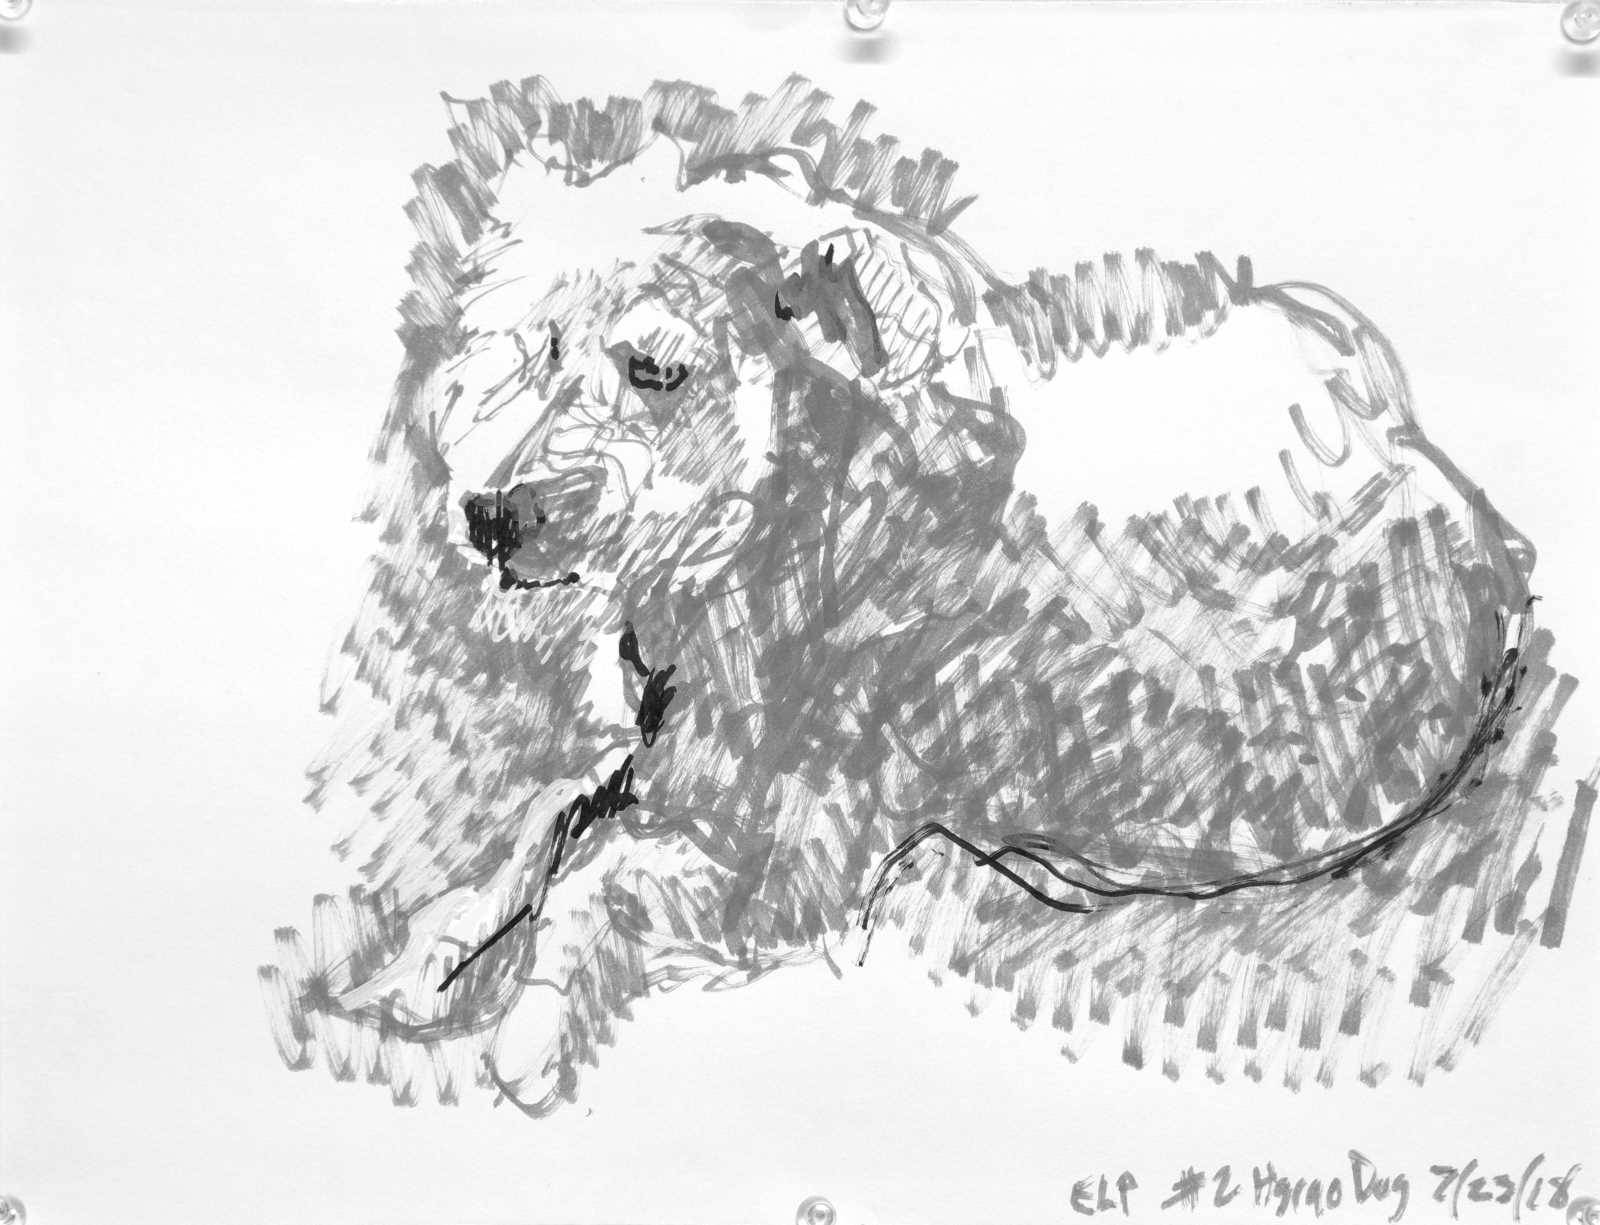 Felt tip pen drawing of a recumbent fluffy white dog. Grey with white and black accents. Artist Elizabeth Lisa Petrulis.